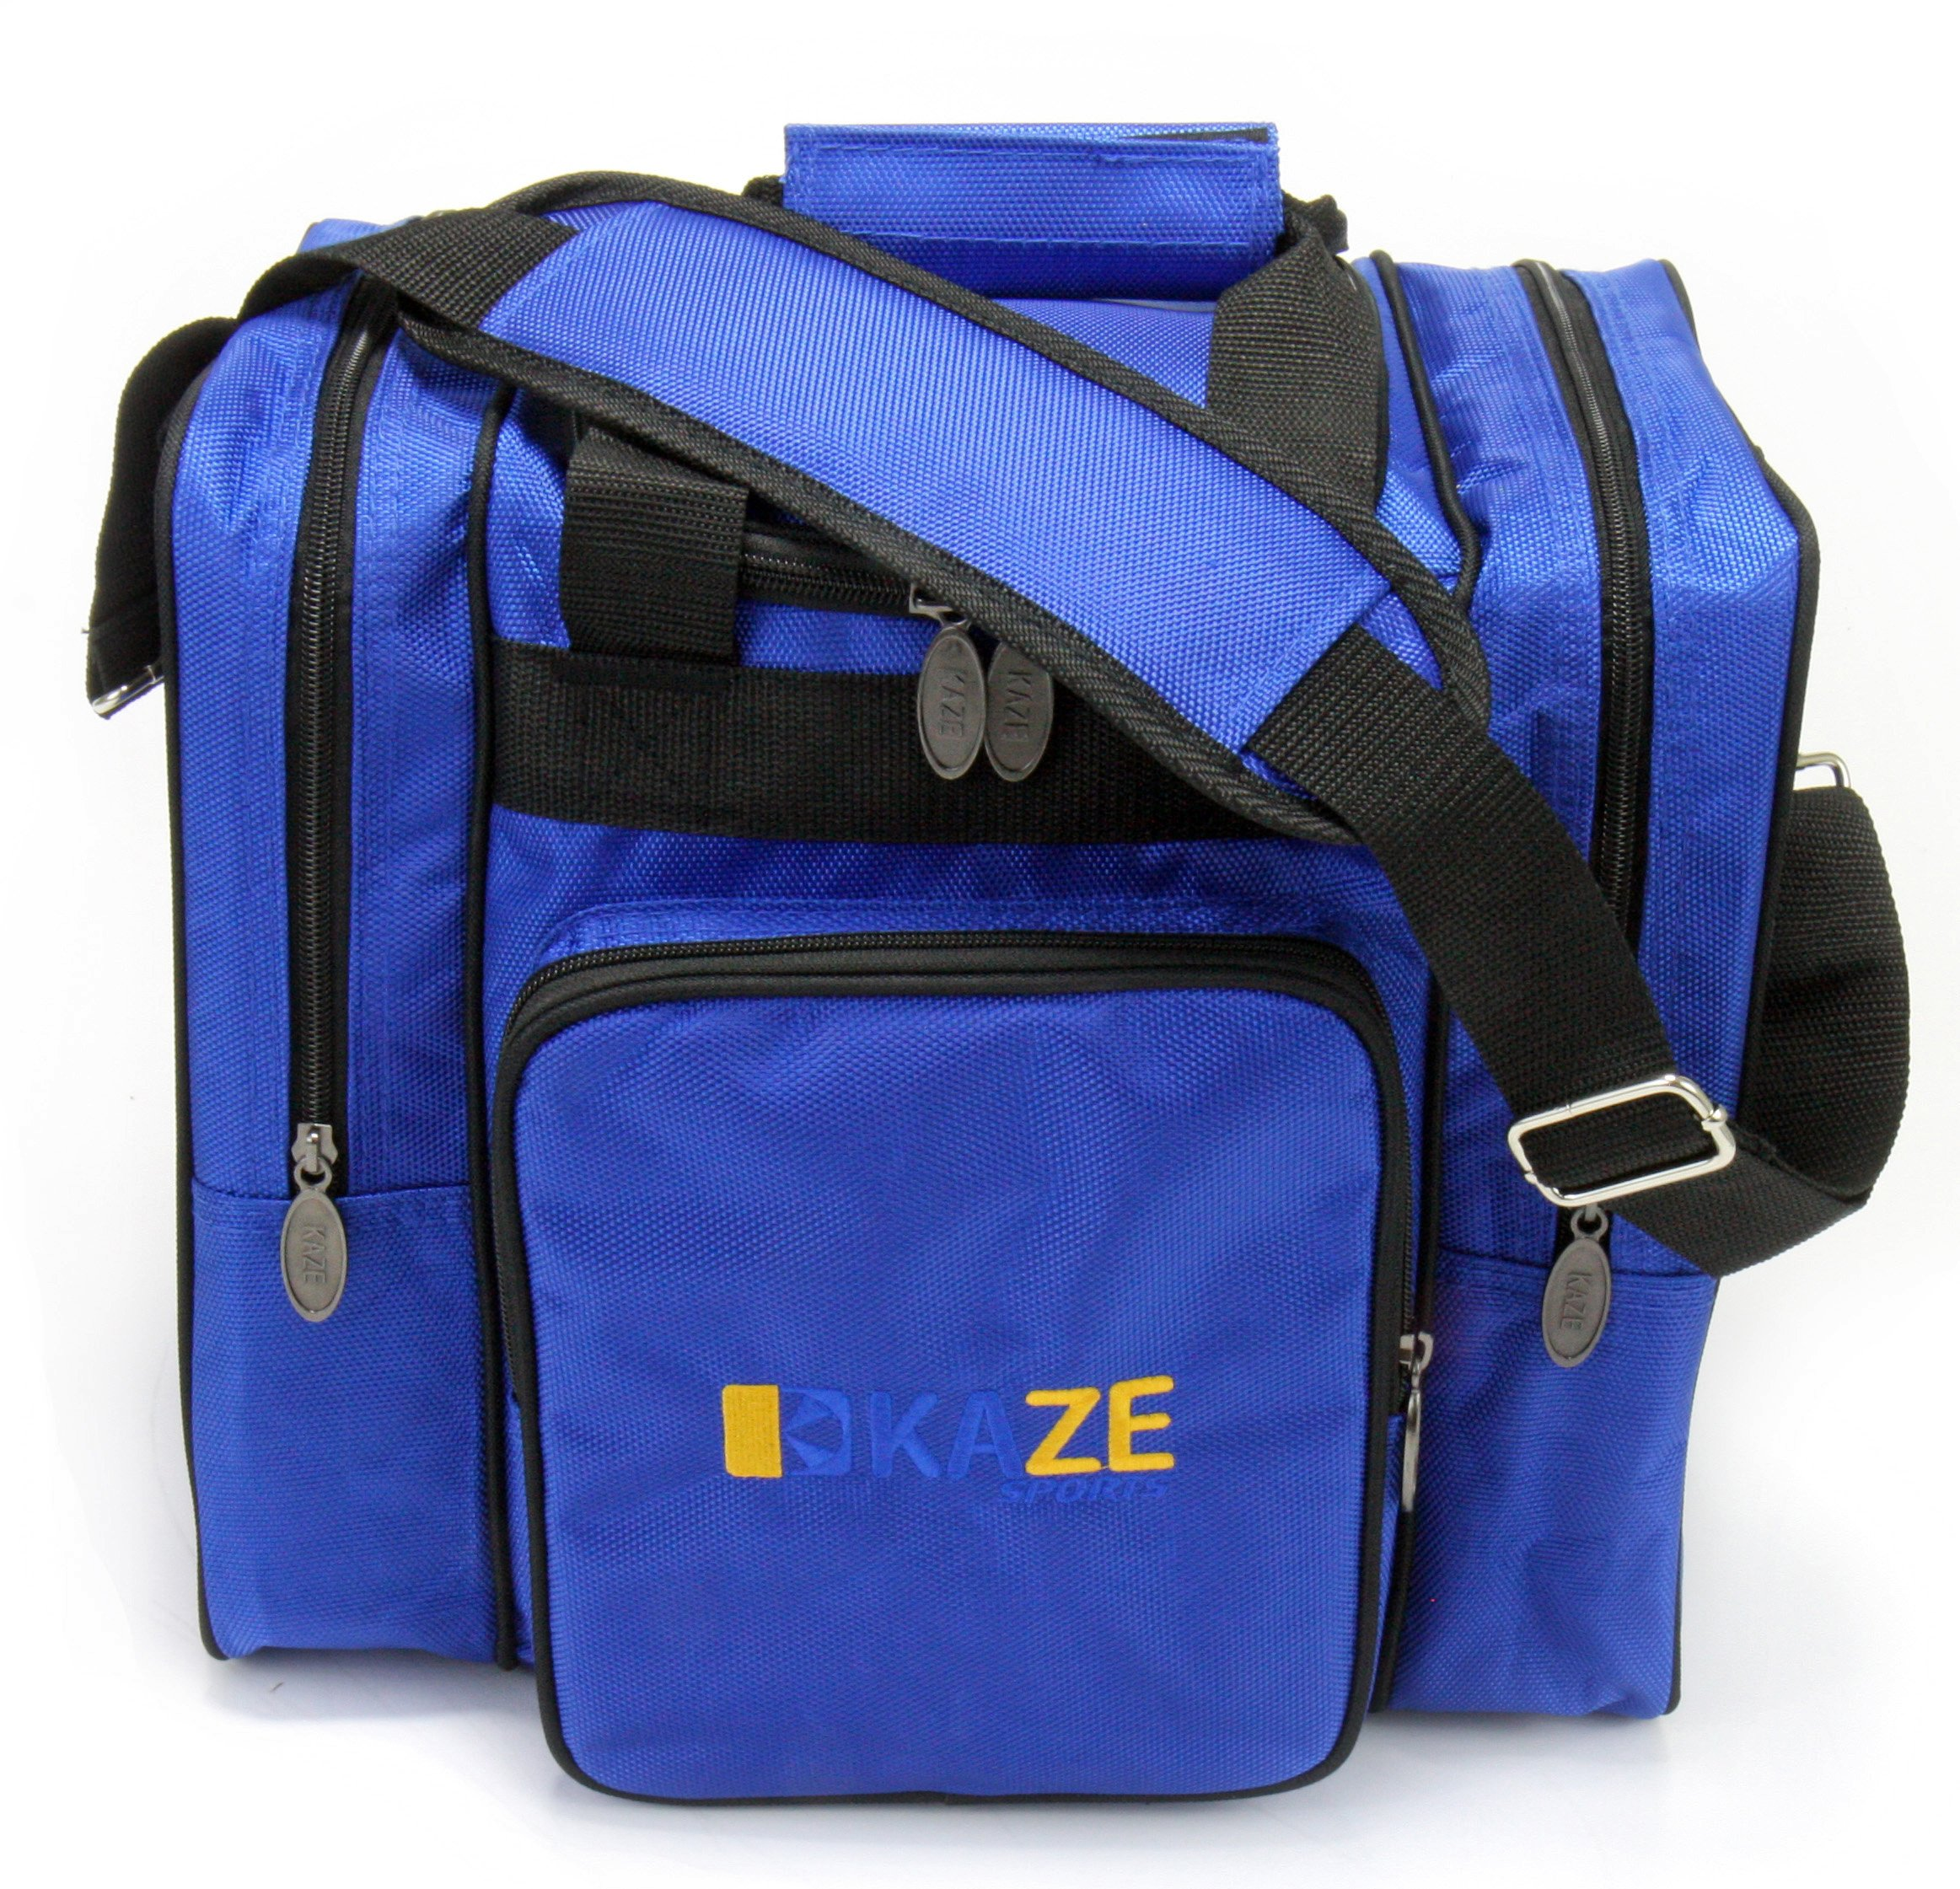 KAZE SPORTS Deluxe 1 Ball Bowling Tote with Two Side Pockets (Blue)